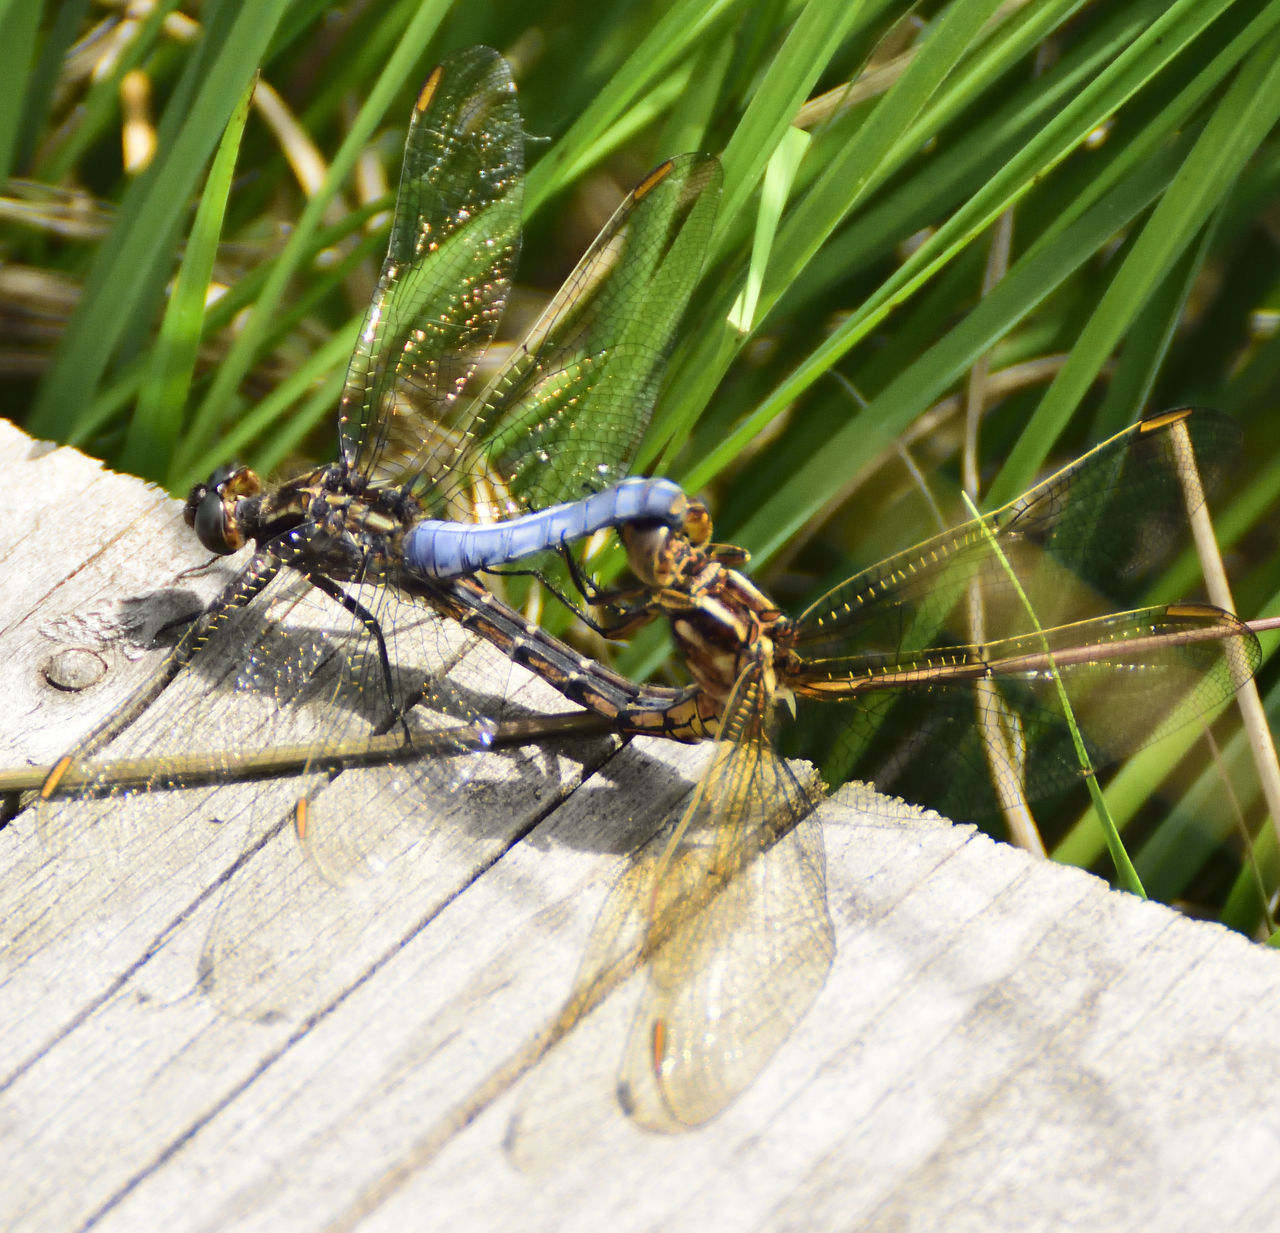 animal themes, animals in the wild, insect, one animal, animal wildlife, wildlife, day, outdoors, nature, close-up, no people